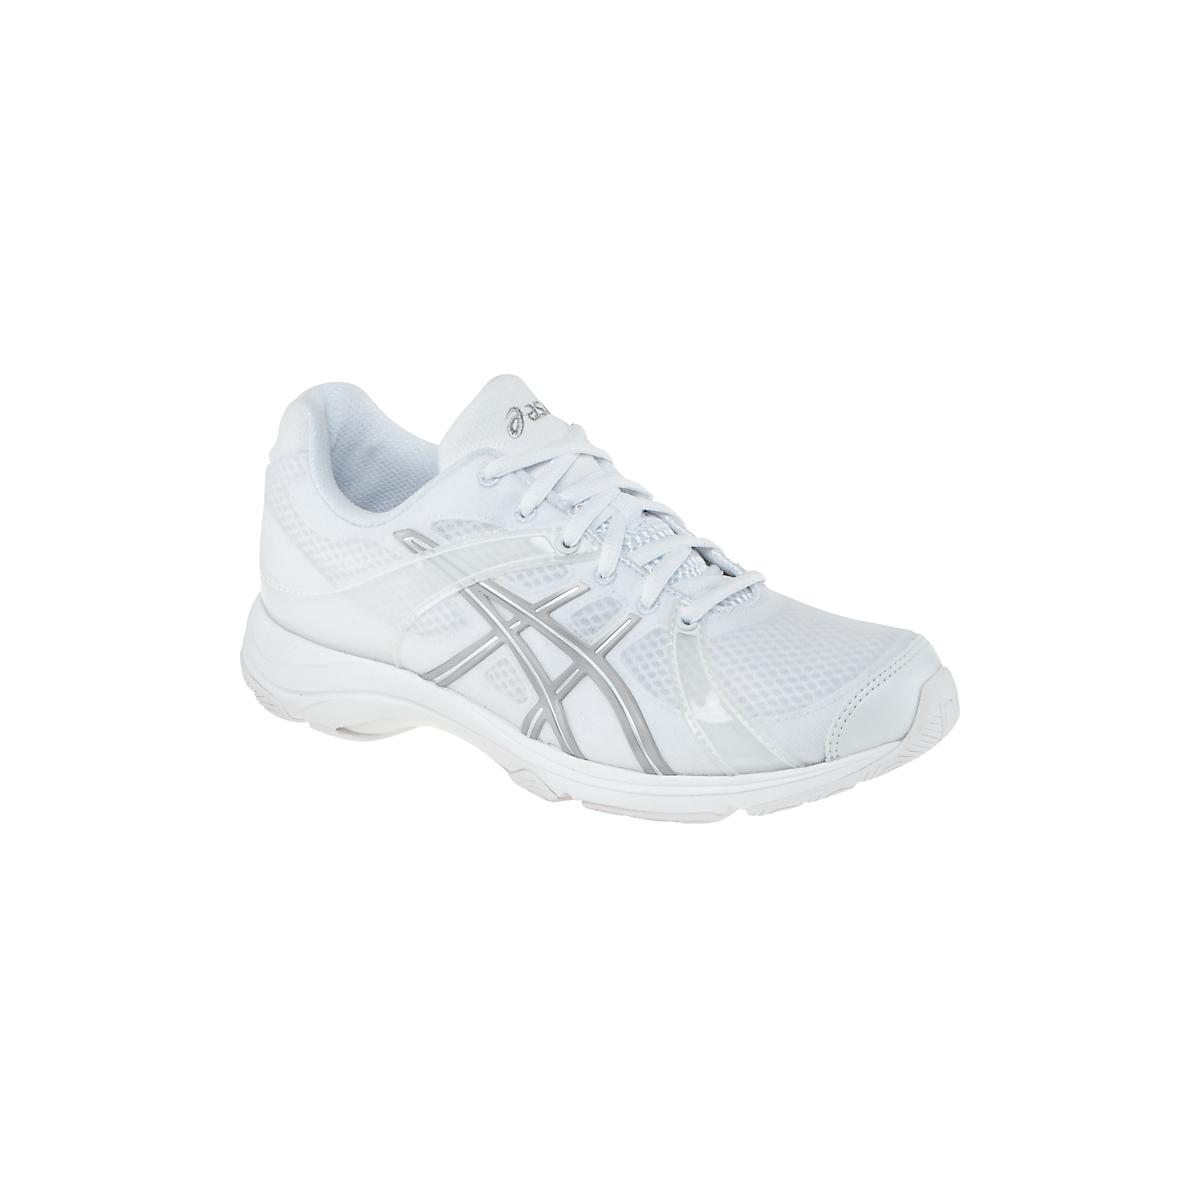 Asics Gel Ipera Training Shoes Womens